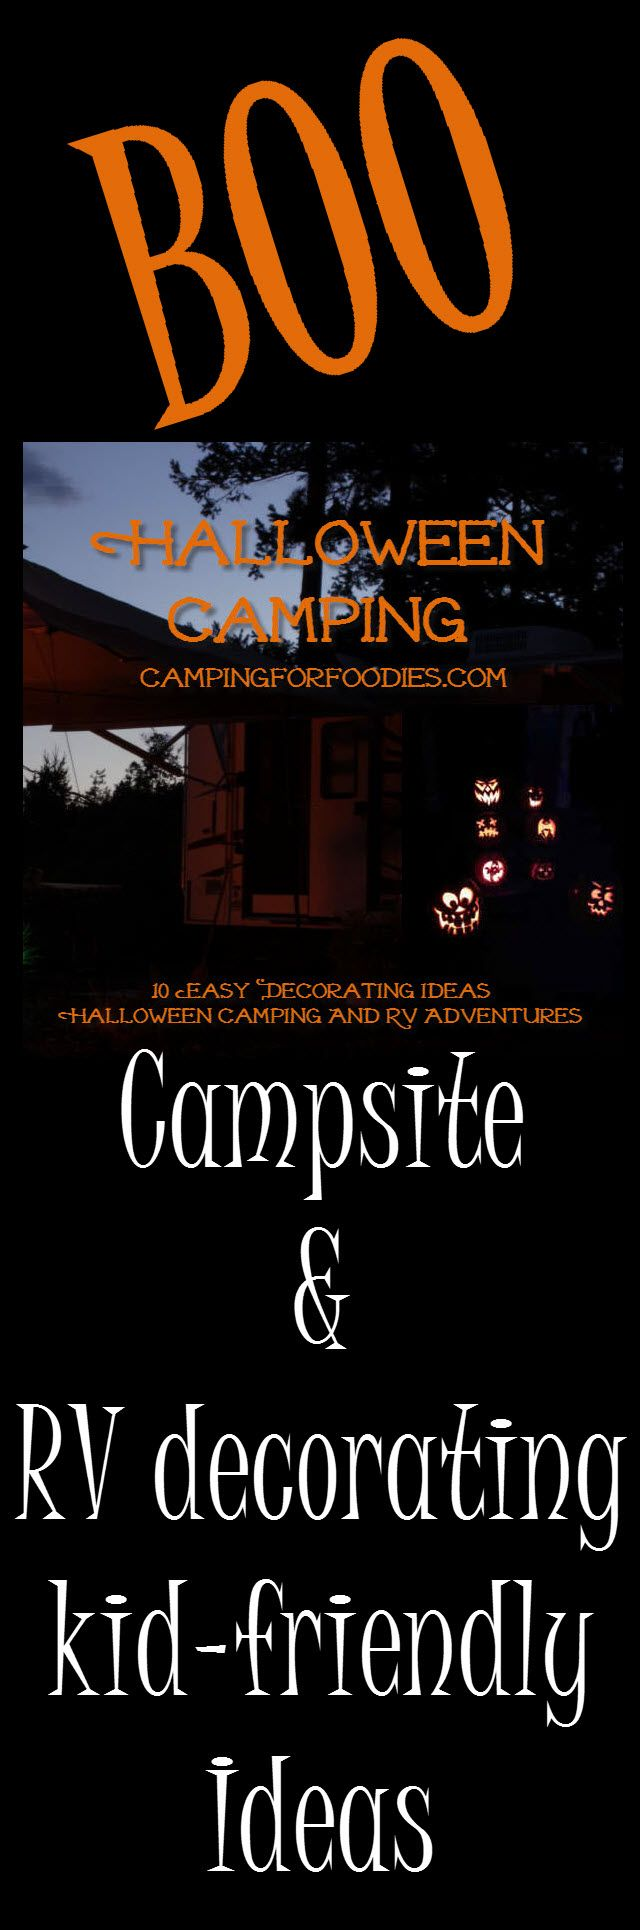 BOO! 10 Easy Decorating Ideas For Halloween Camping And RV Adventures! Halloween is all about costumes and decorations so when we decided to leave town for a camping weekend over the holiday, we wanted to bring some of the festivities along for the ride. A few quick tricks will turn your campsite, tent or RV into a spooky kid-friendly adventure the adults will love too!